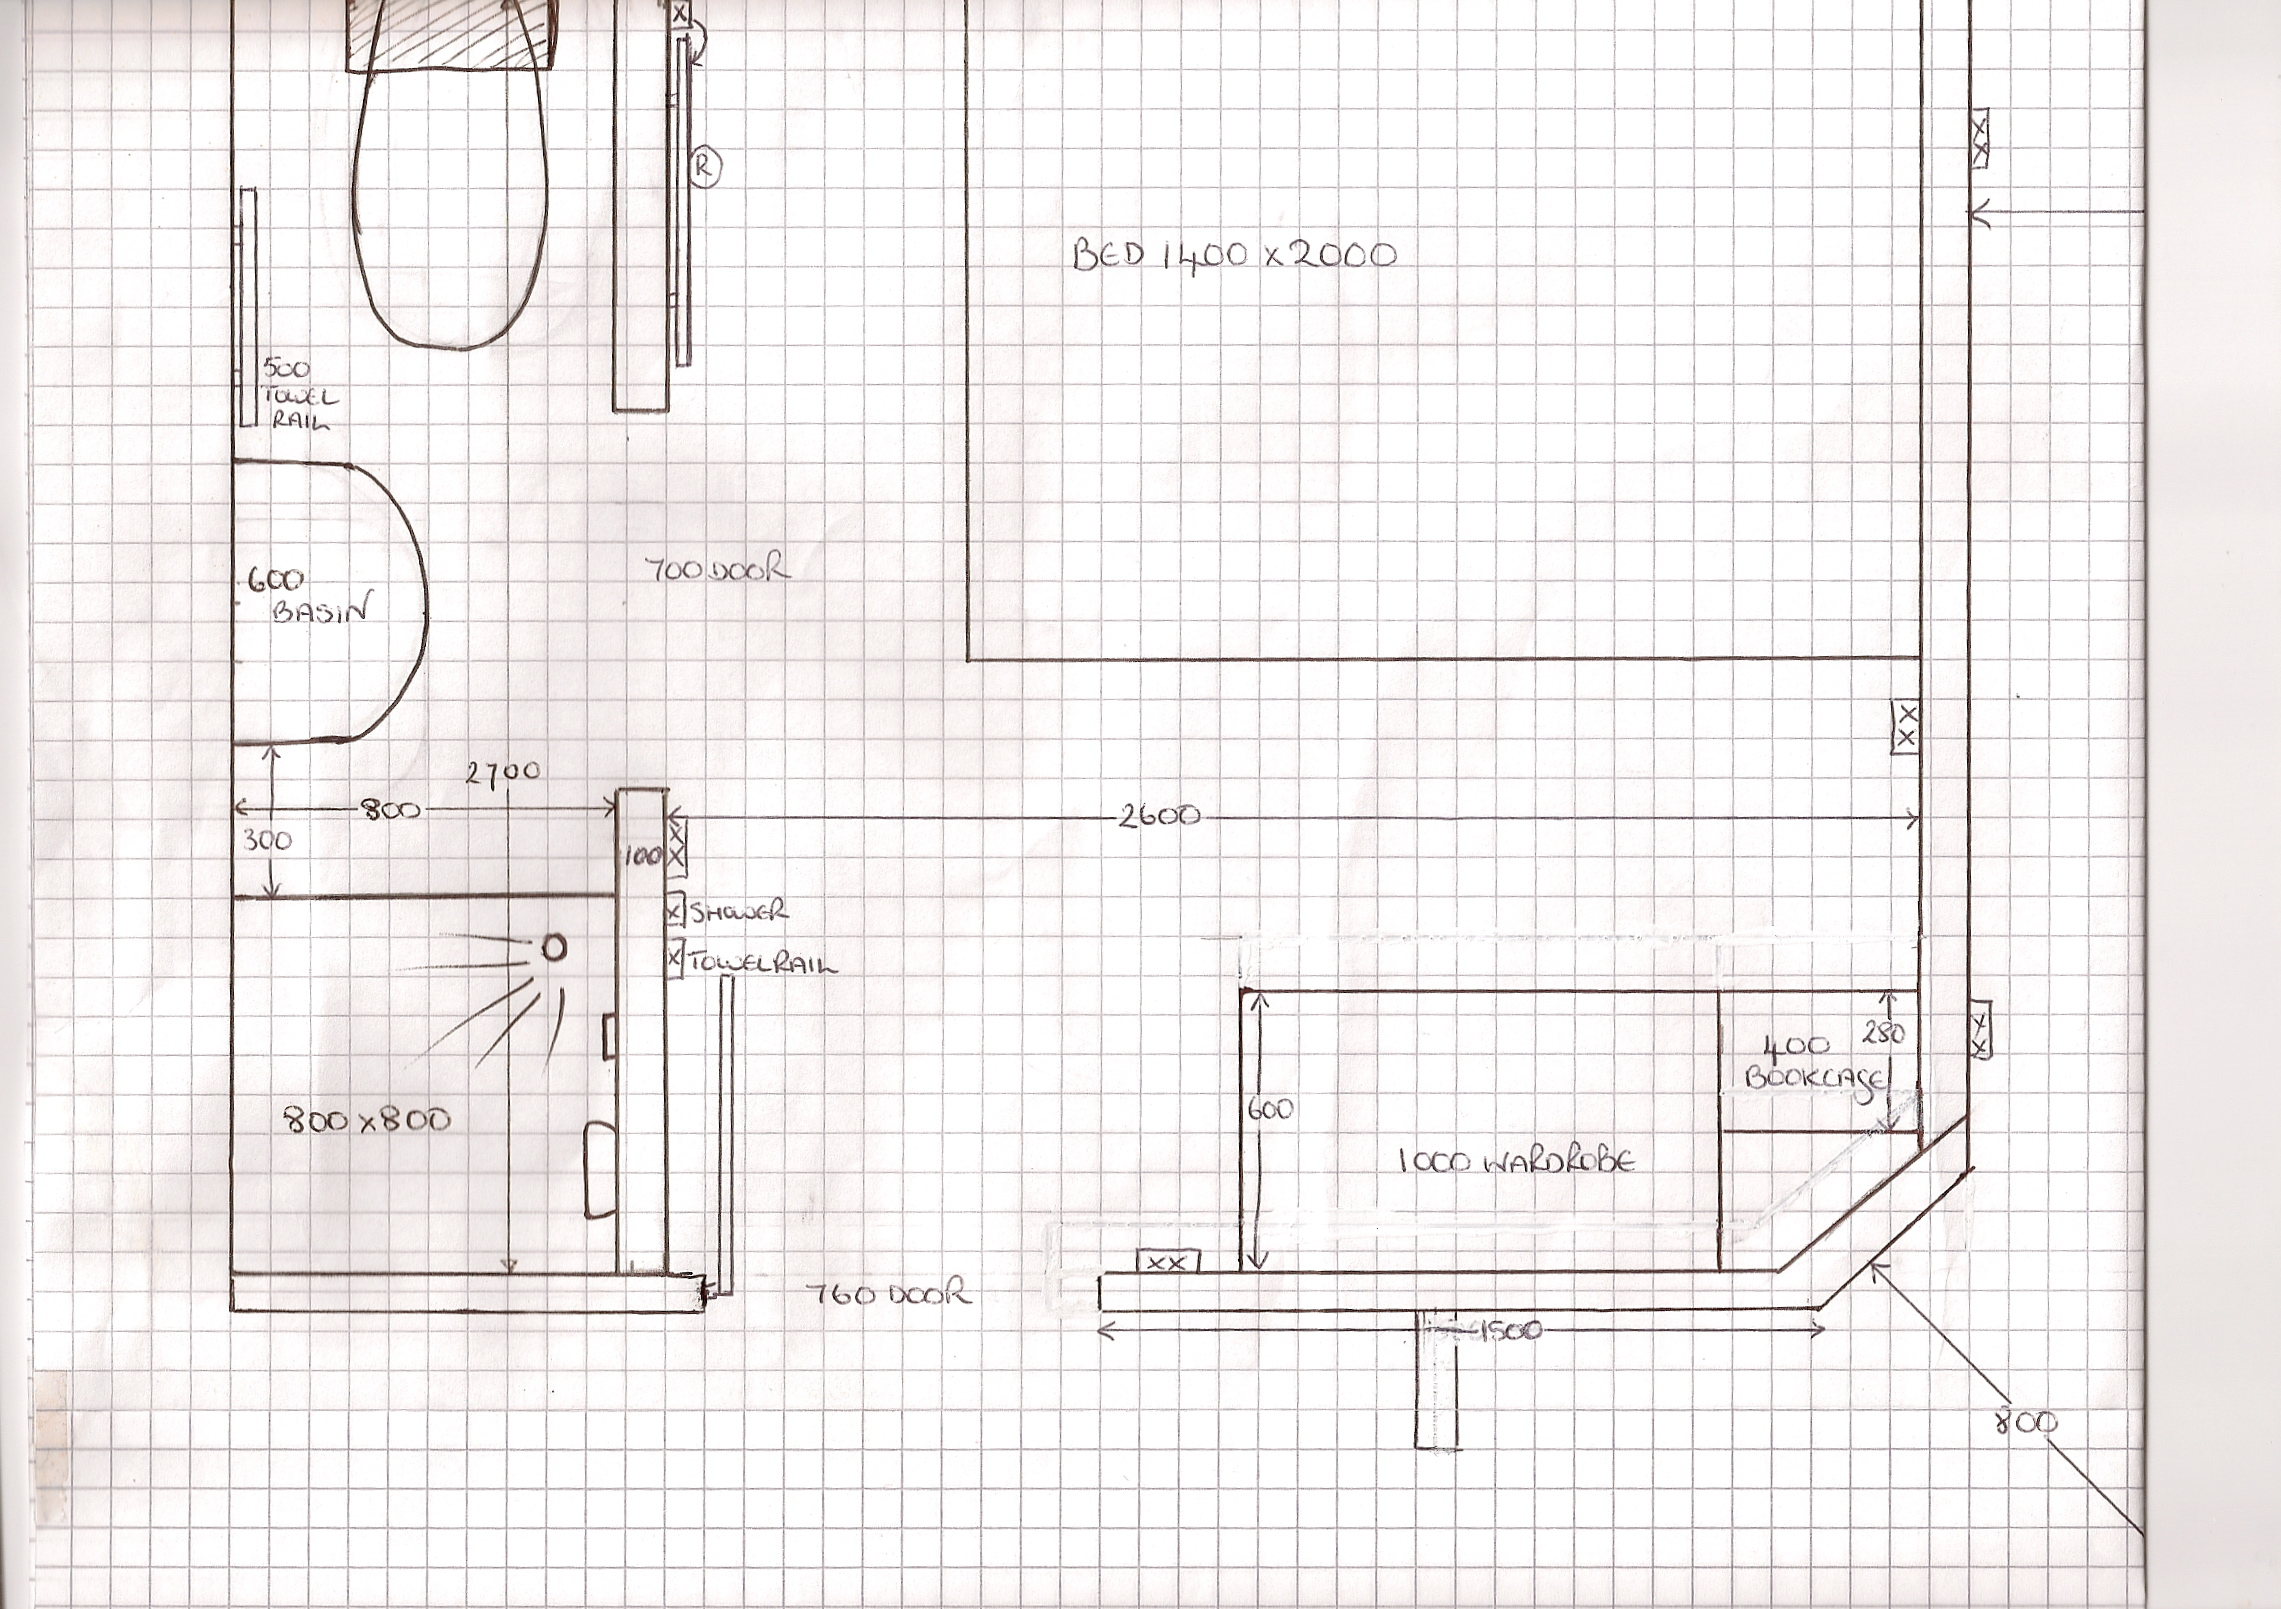 Project squeeze layout explained and completed shower Room layout design online